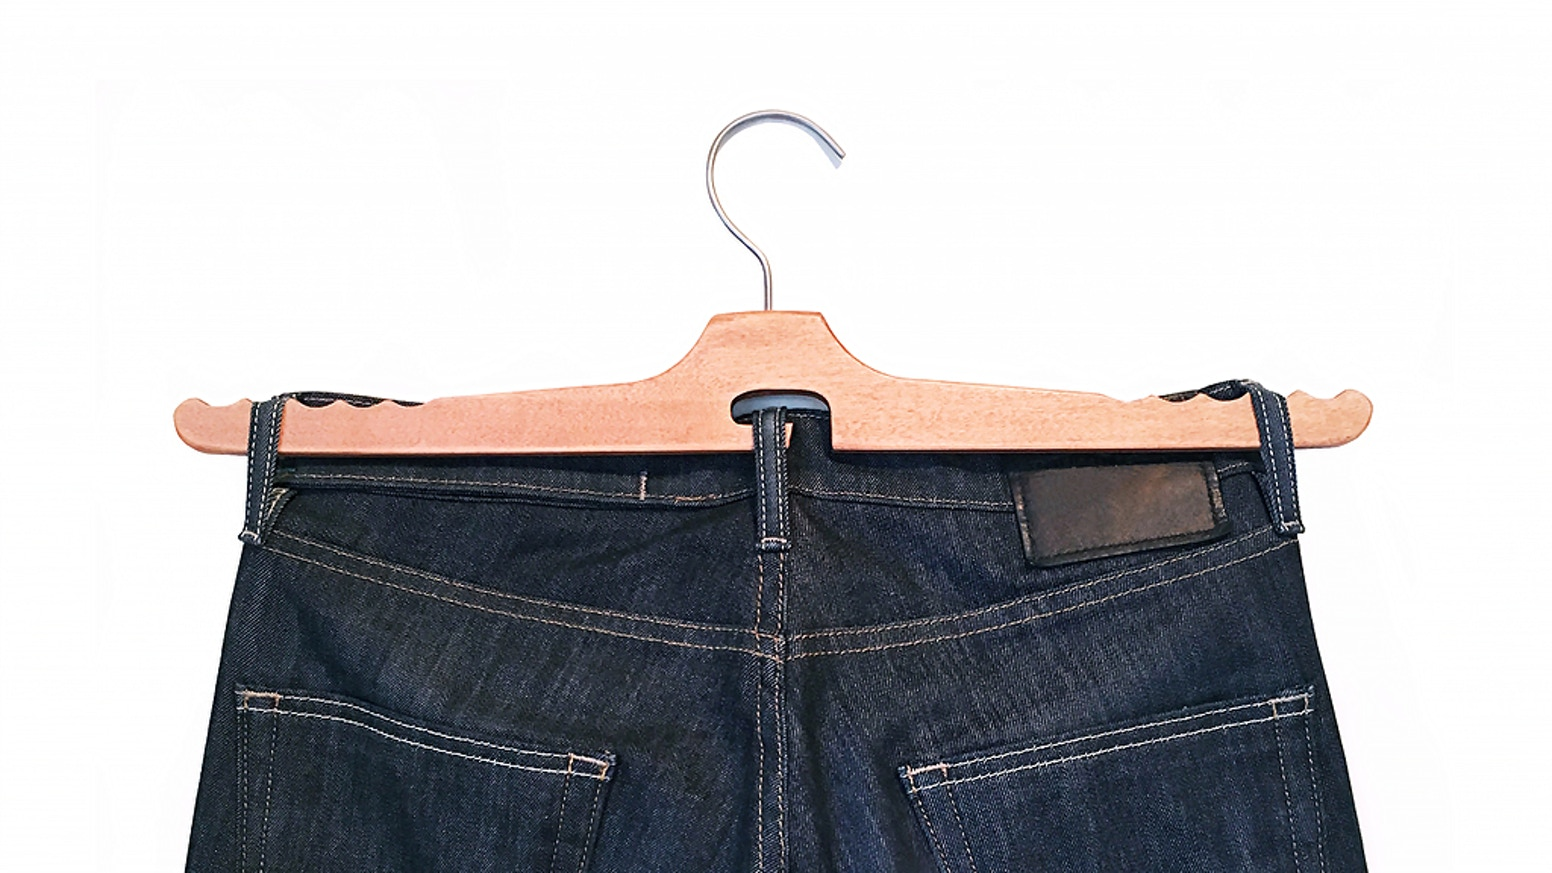 No more folding, ironing, creases, wrinkles or even drying your jeans. An easy to use hanger for your favorite denim.